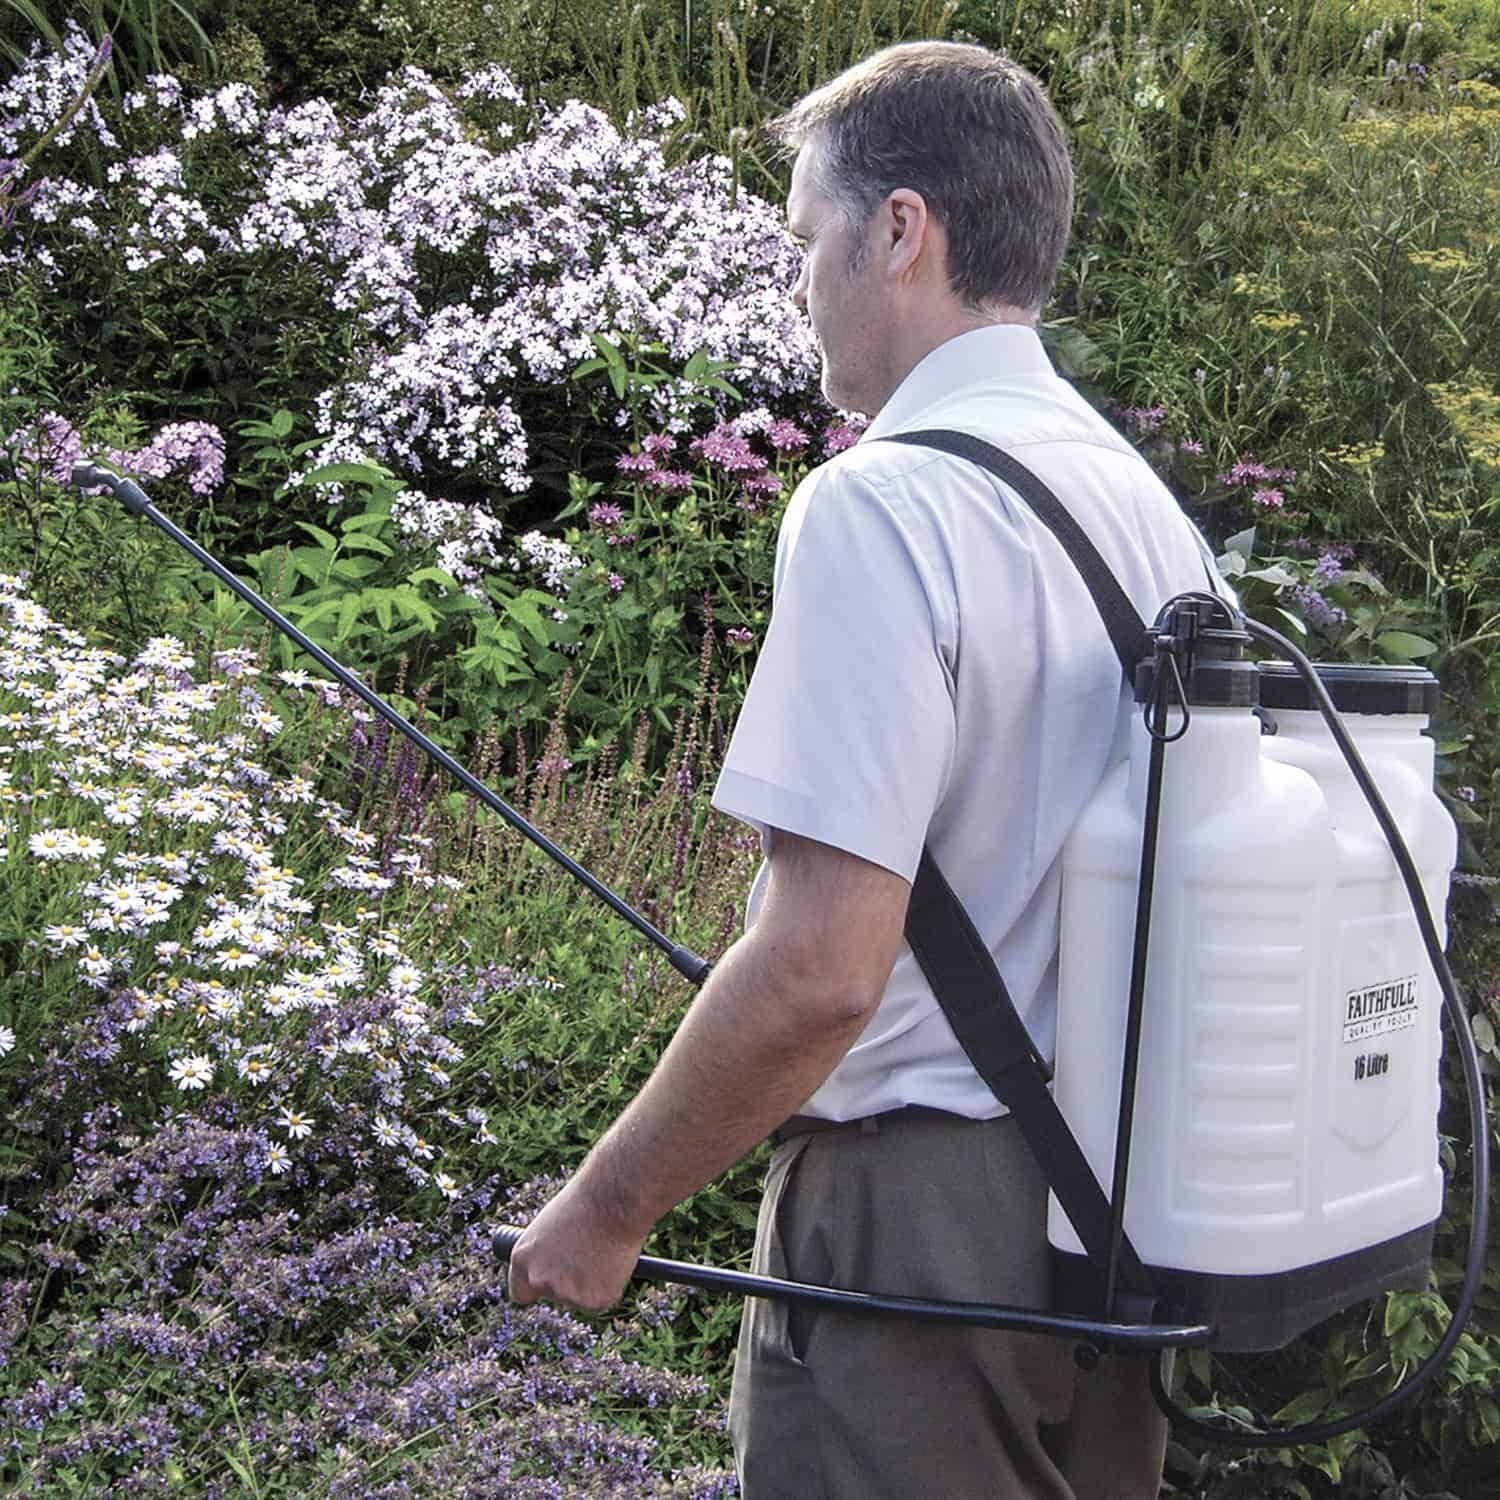 Faithfull SPRAY16AV Pressure Sprayer Knapsack 16L